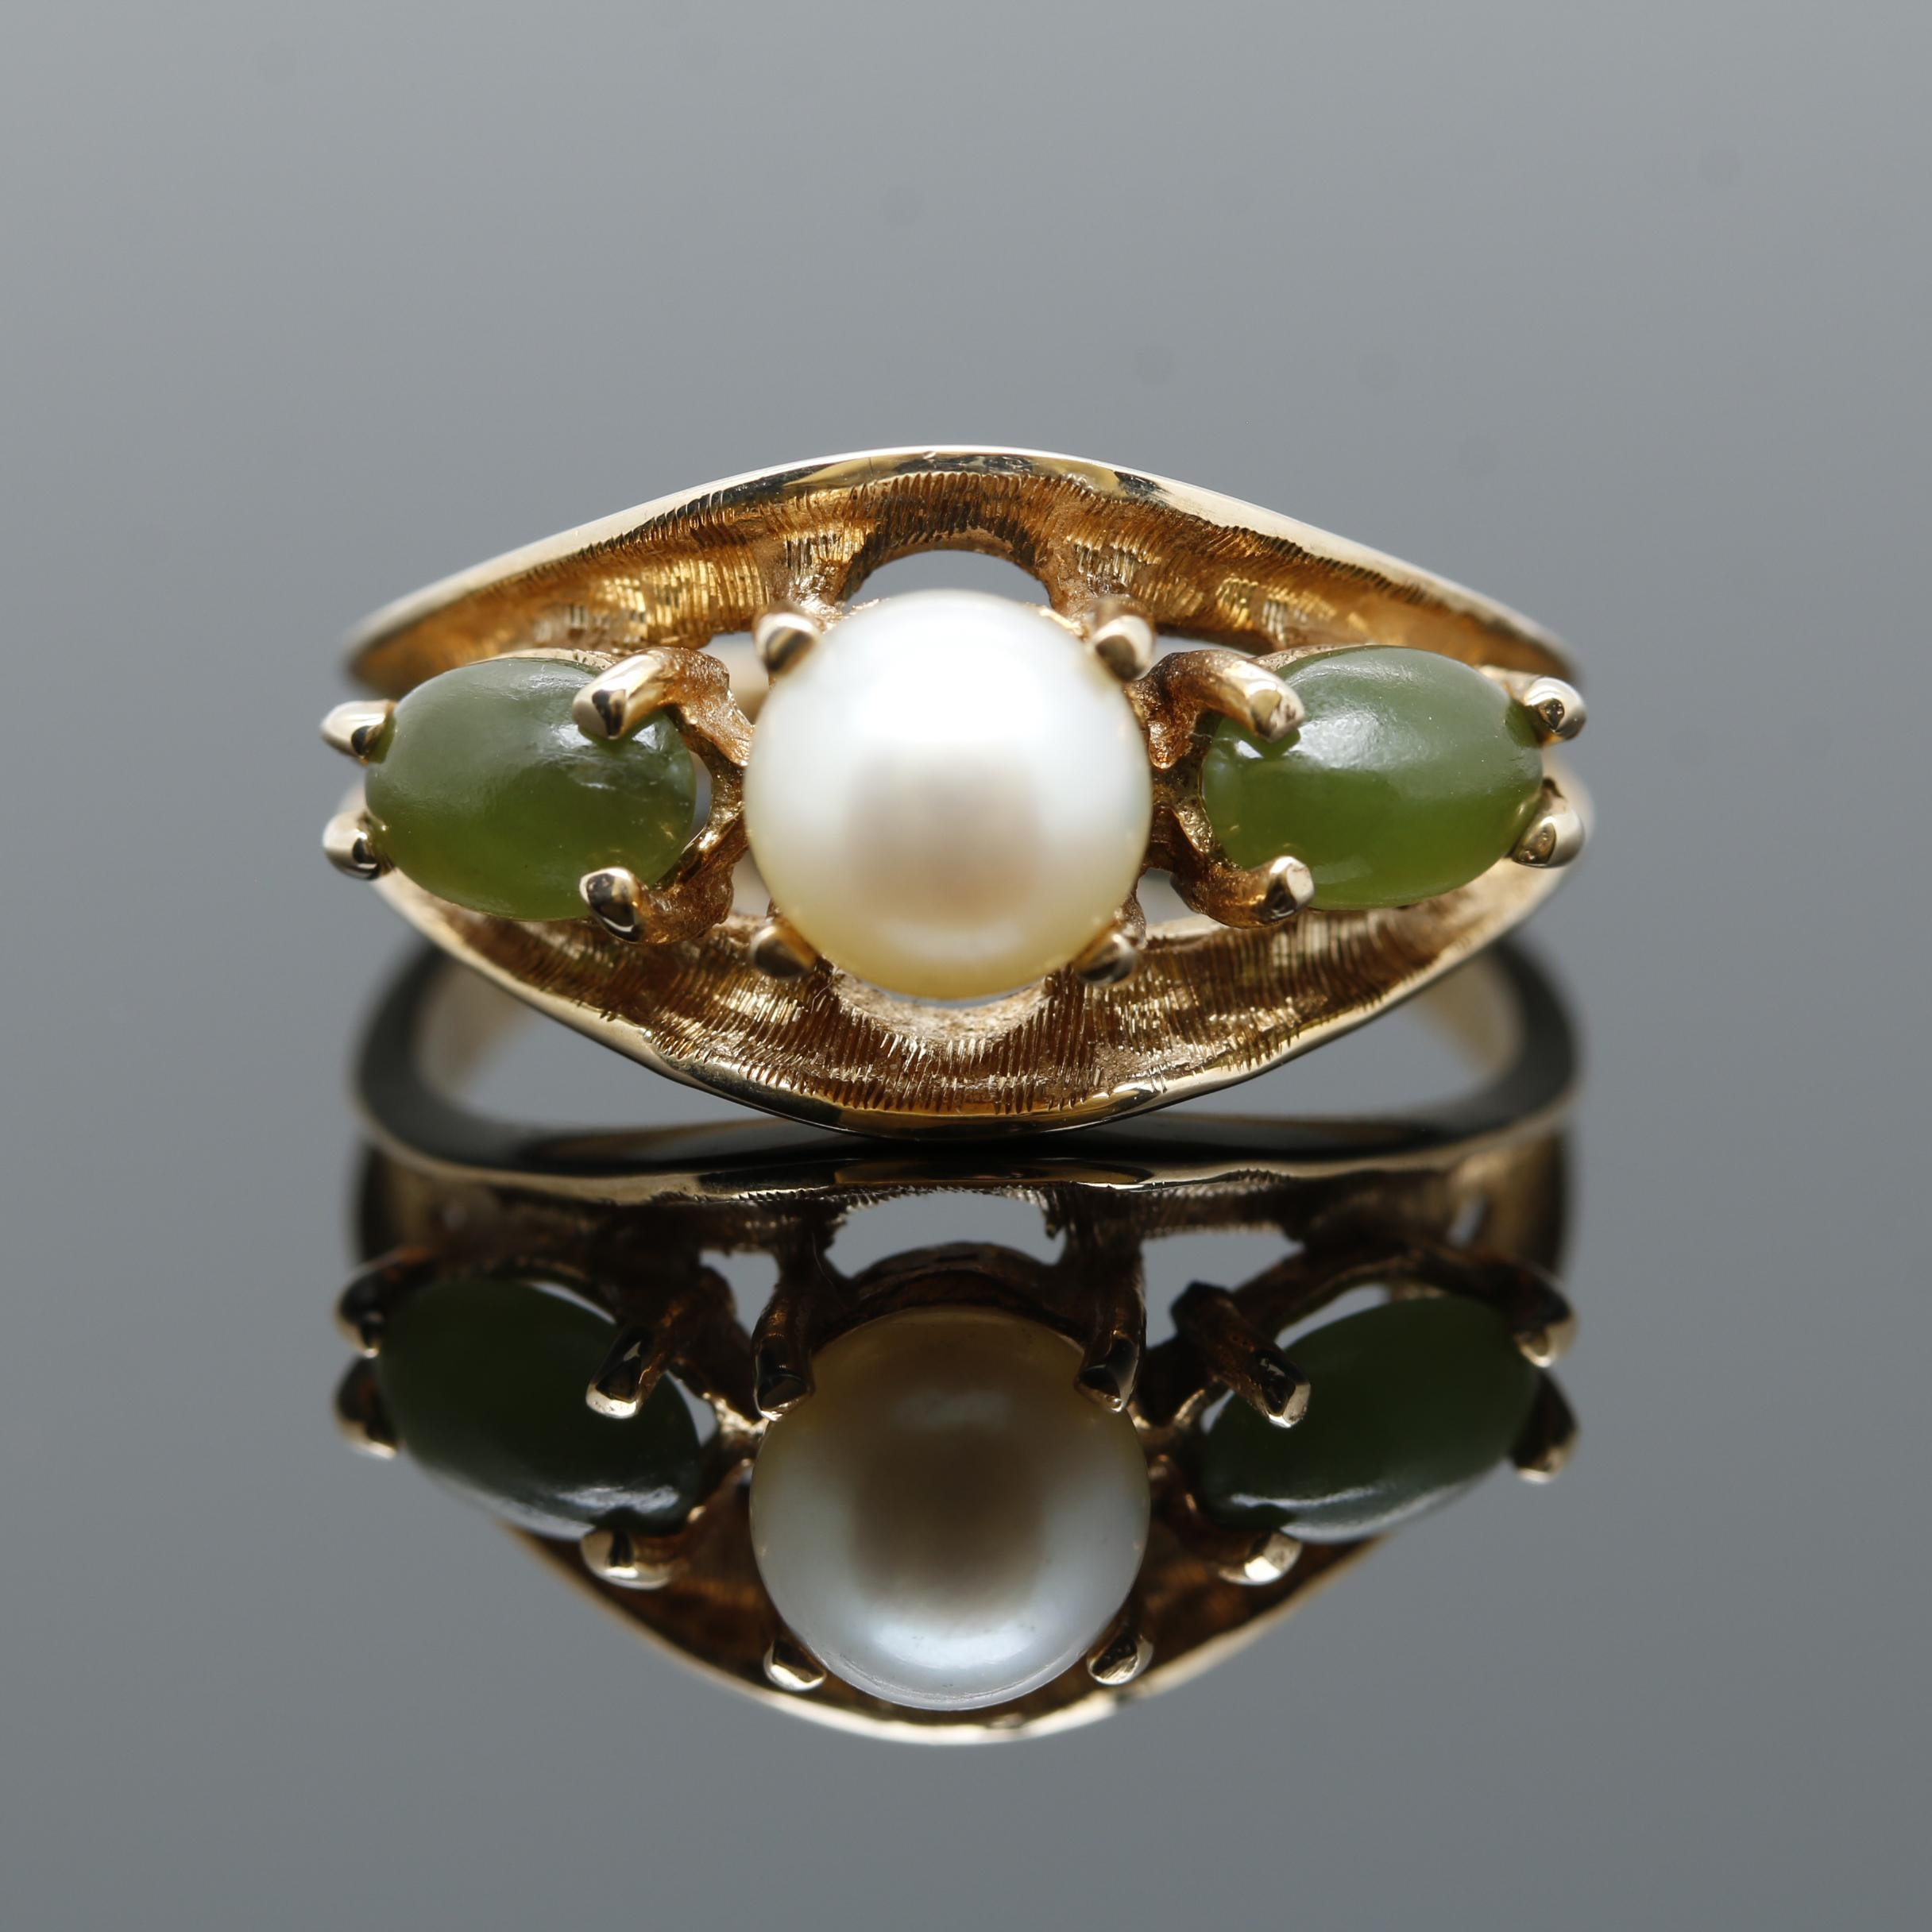 10K Yellow Gold Cultured Pearl and Nephrite Ring